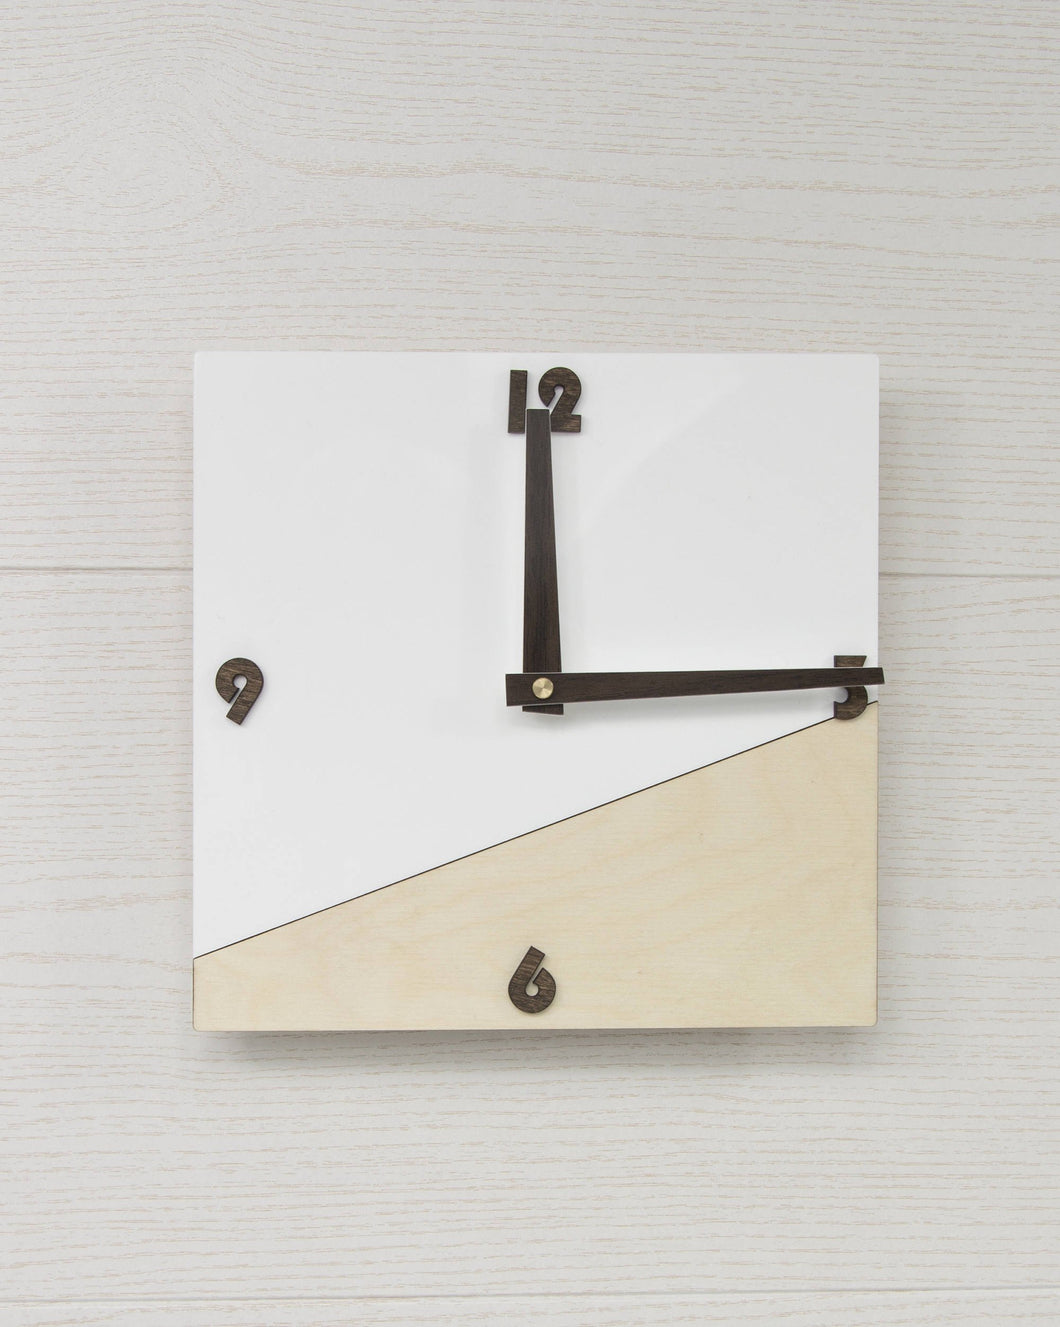 Minimalist Clock, Wooden Clock, Plywood Clock, Acrylic Clock, White Clock, Square Clock, Modern Wall Decor, Rustic Wall Decor, Wall Clock